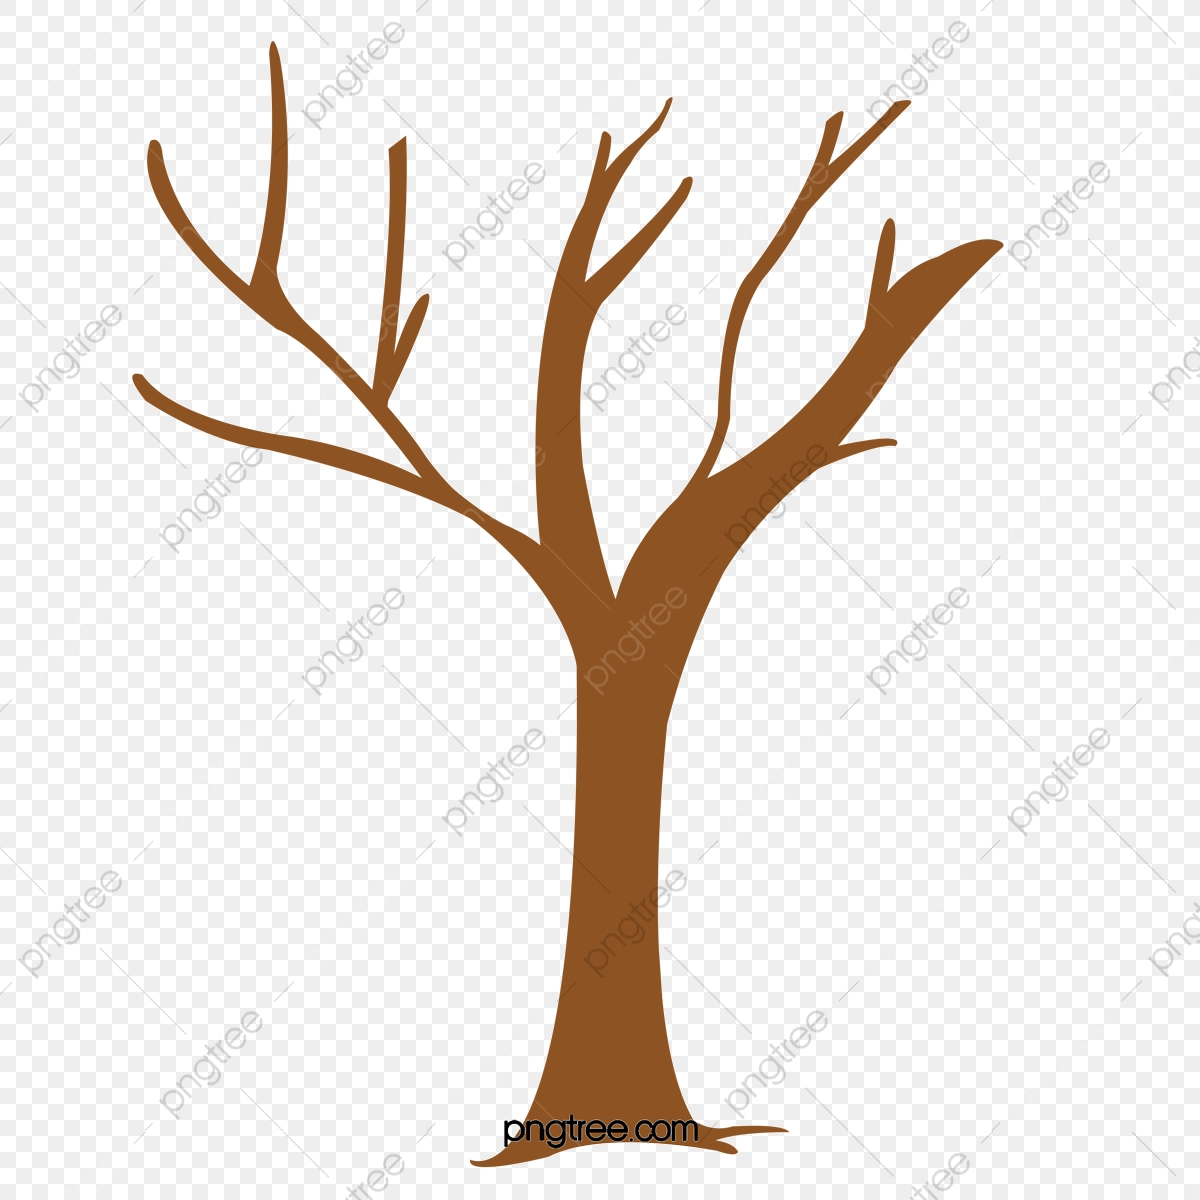 Cartoon Hand Trunk, Cartoon Clipart, Tree Trunk, Trunk PNG.